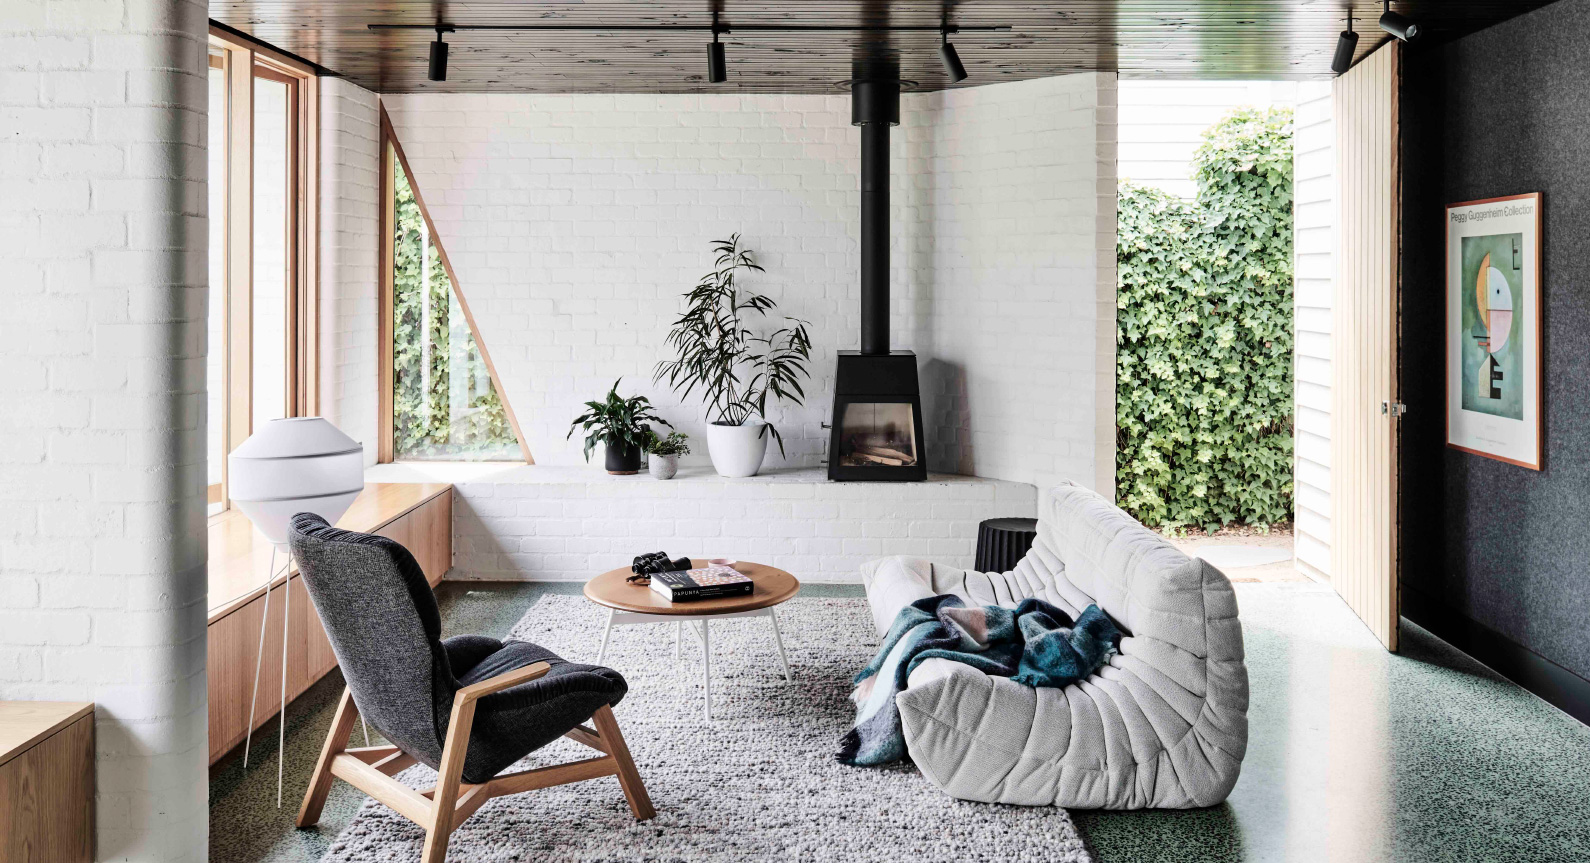 The Wizards In Oz: Taylor Knights Architects Transform This Suburban Bungalow In Brunswick